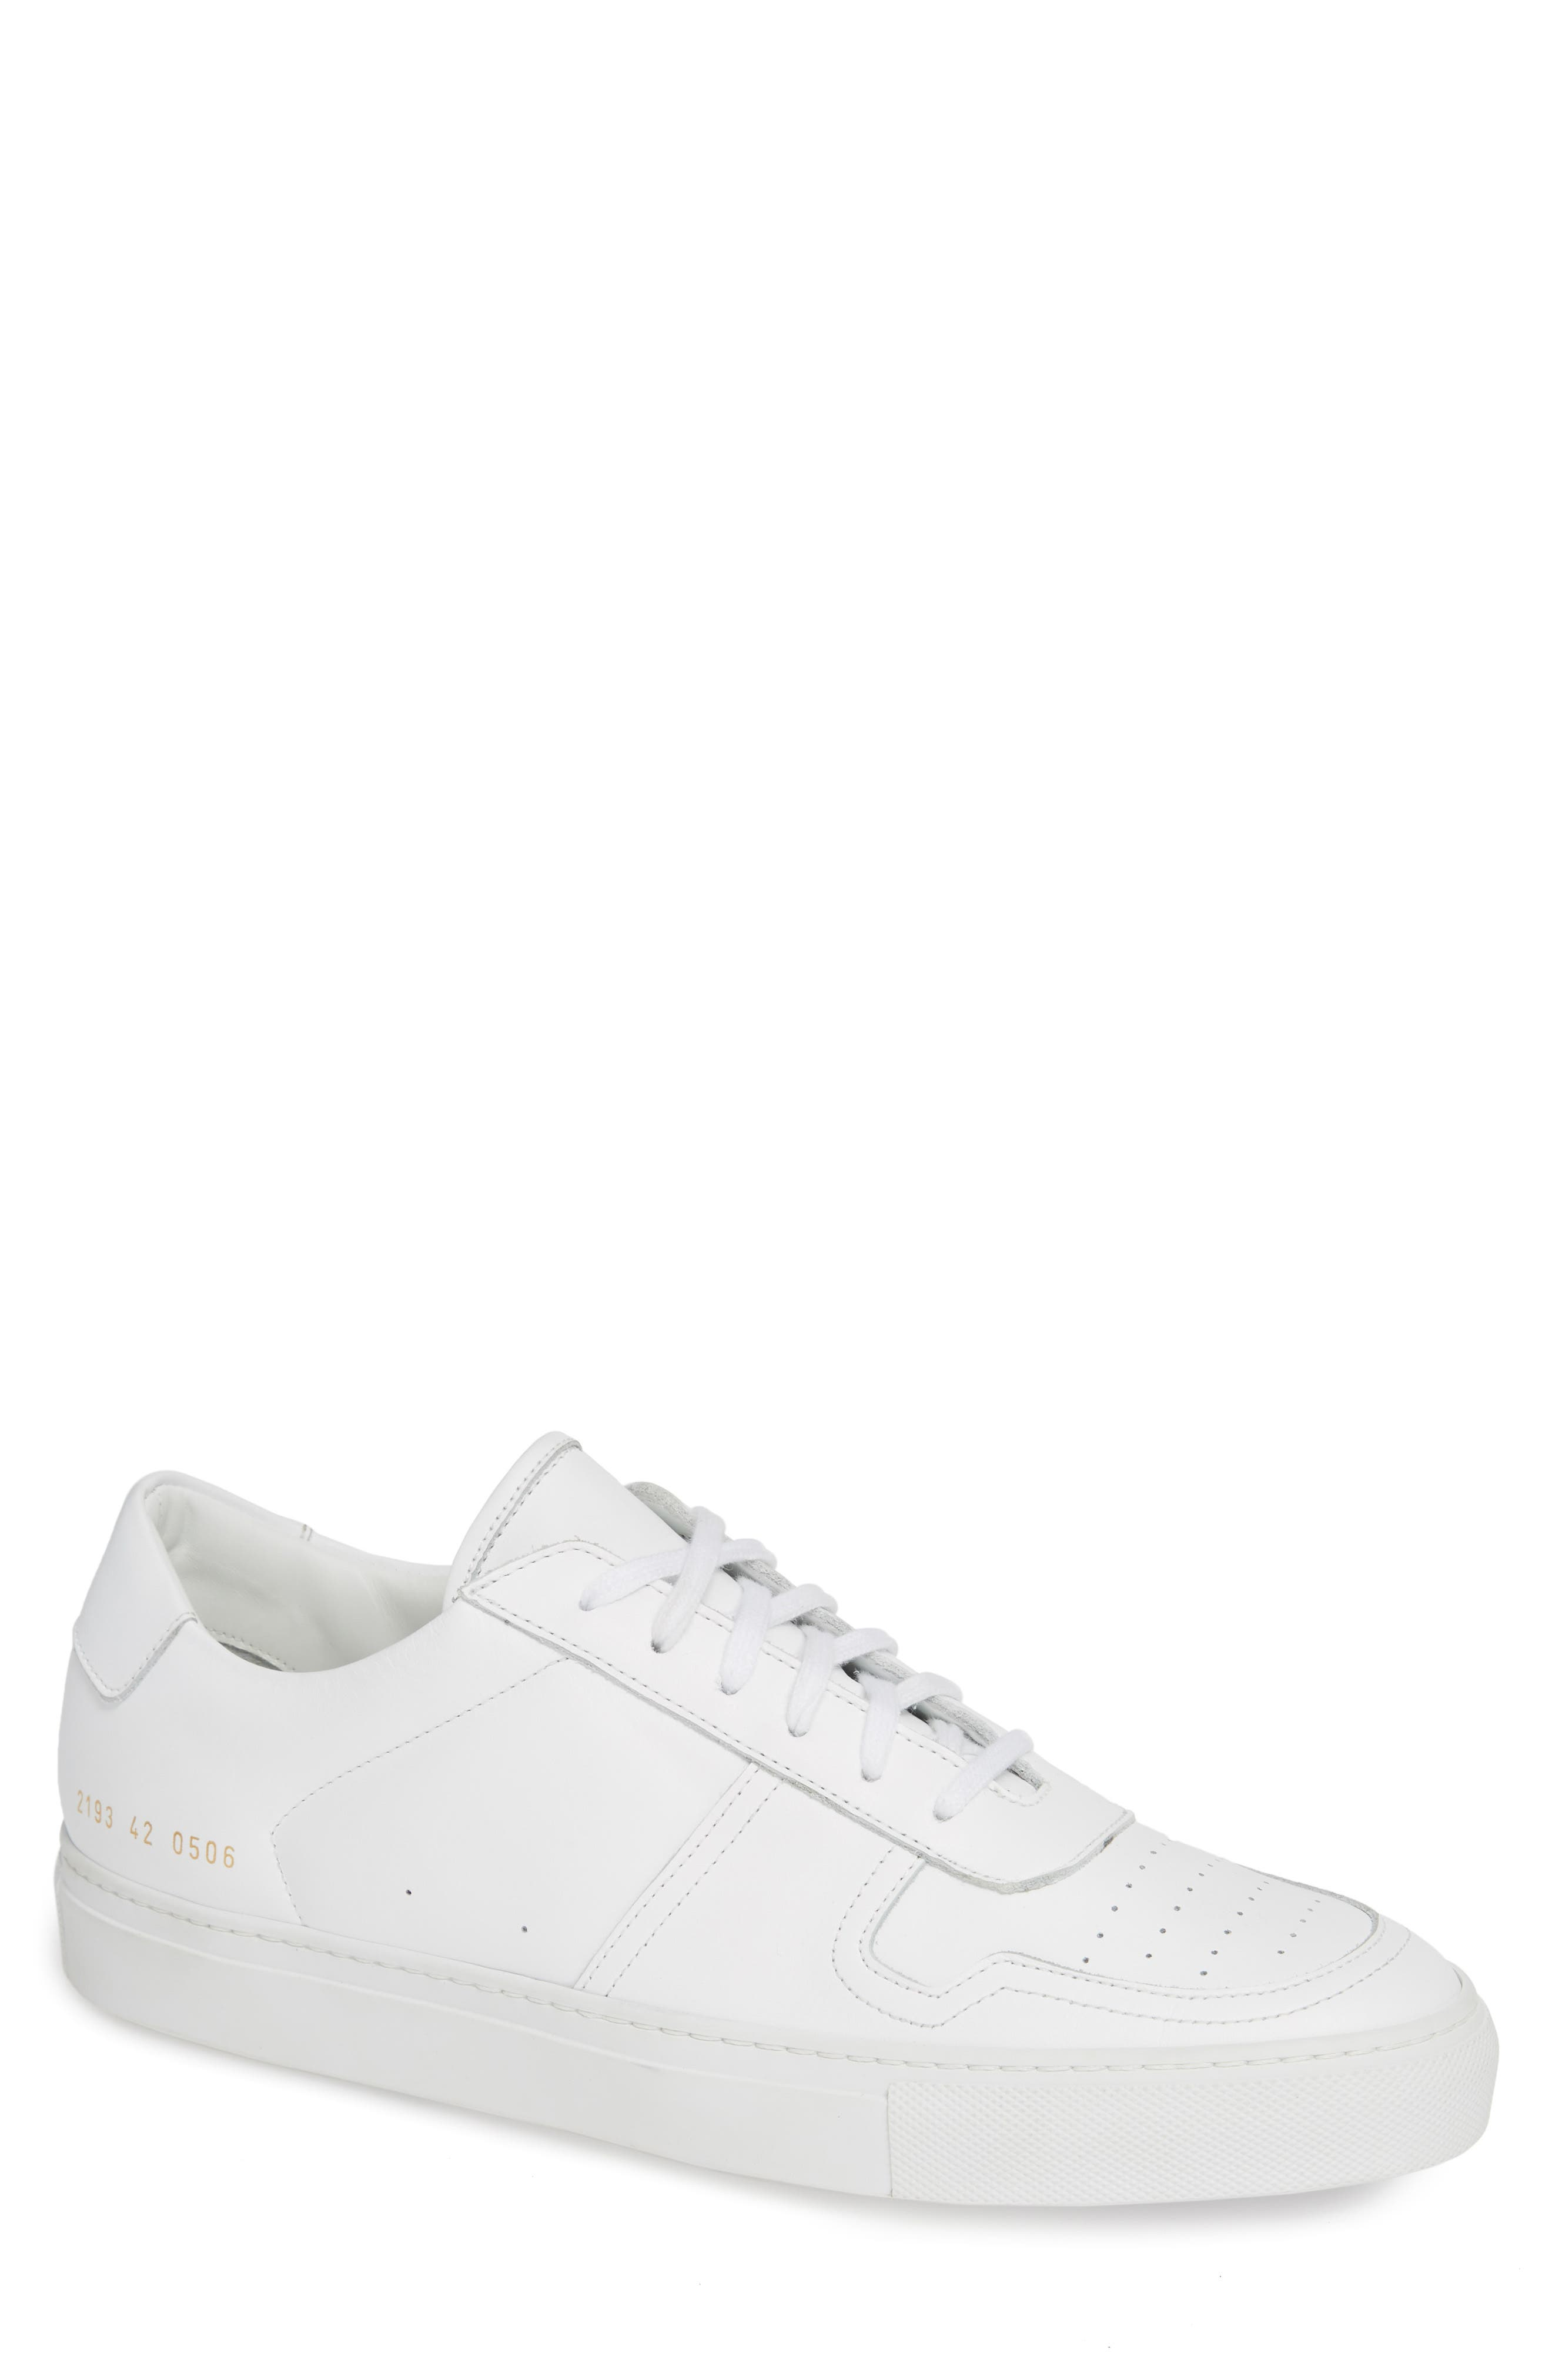 COMMON PROJECTS Bball Low Top Sneaker, Main, color, WHITE